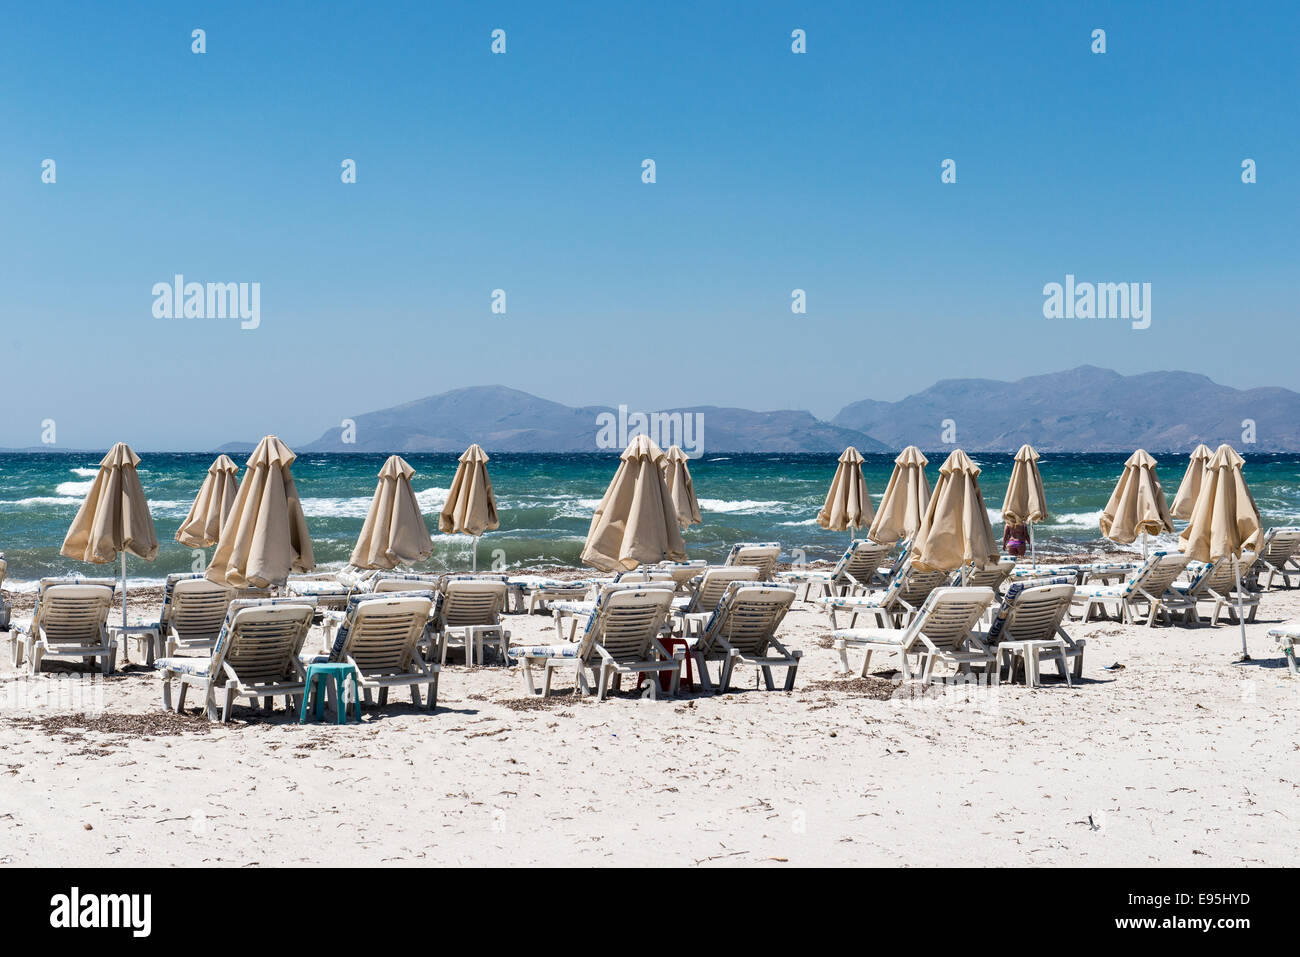 Empty beach with closed parasols and sun loungers on the beach of Mastichari, island of Kos, Greece Stock Photo